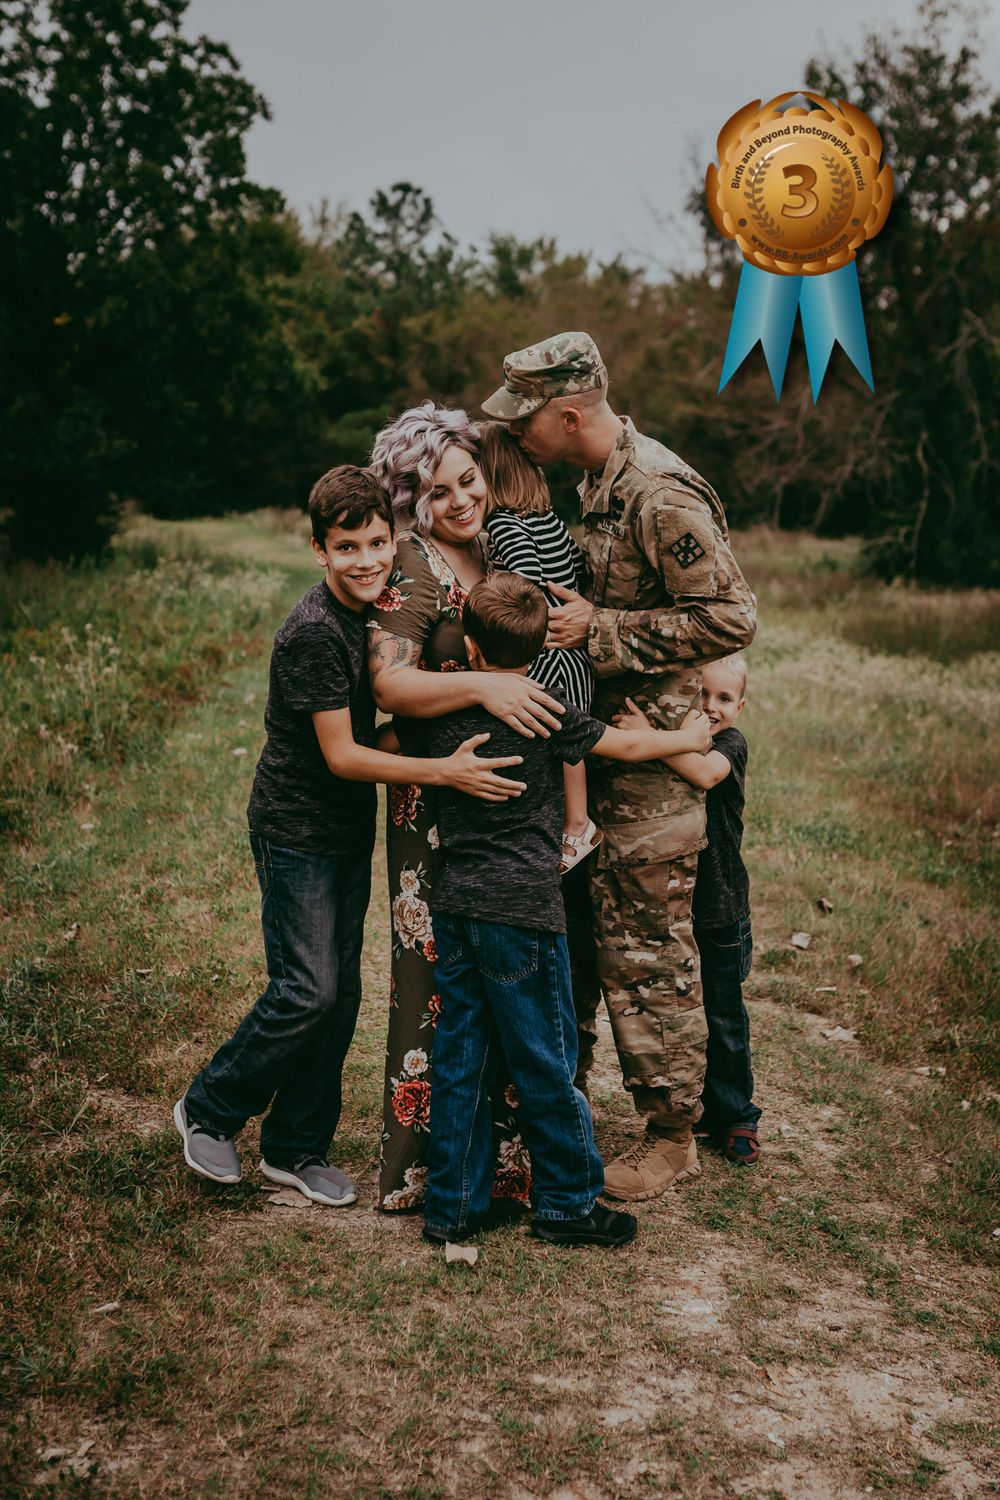 A family huddled together embracing each other happily. The father is wearing a military uniform. Award-winning image.